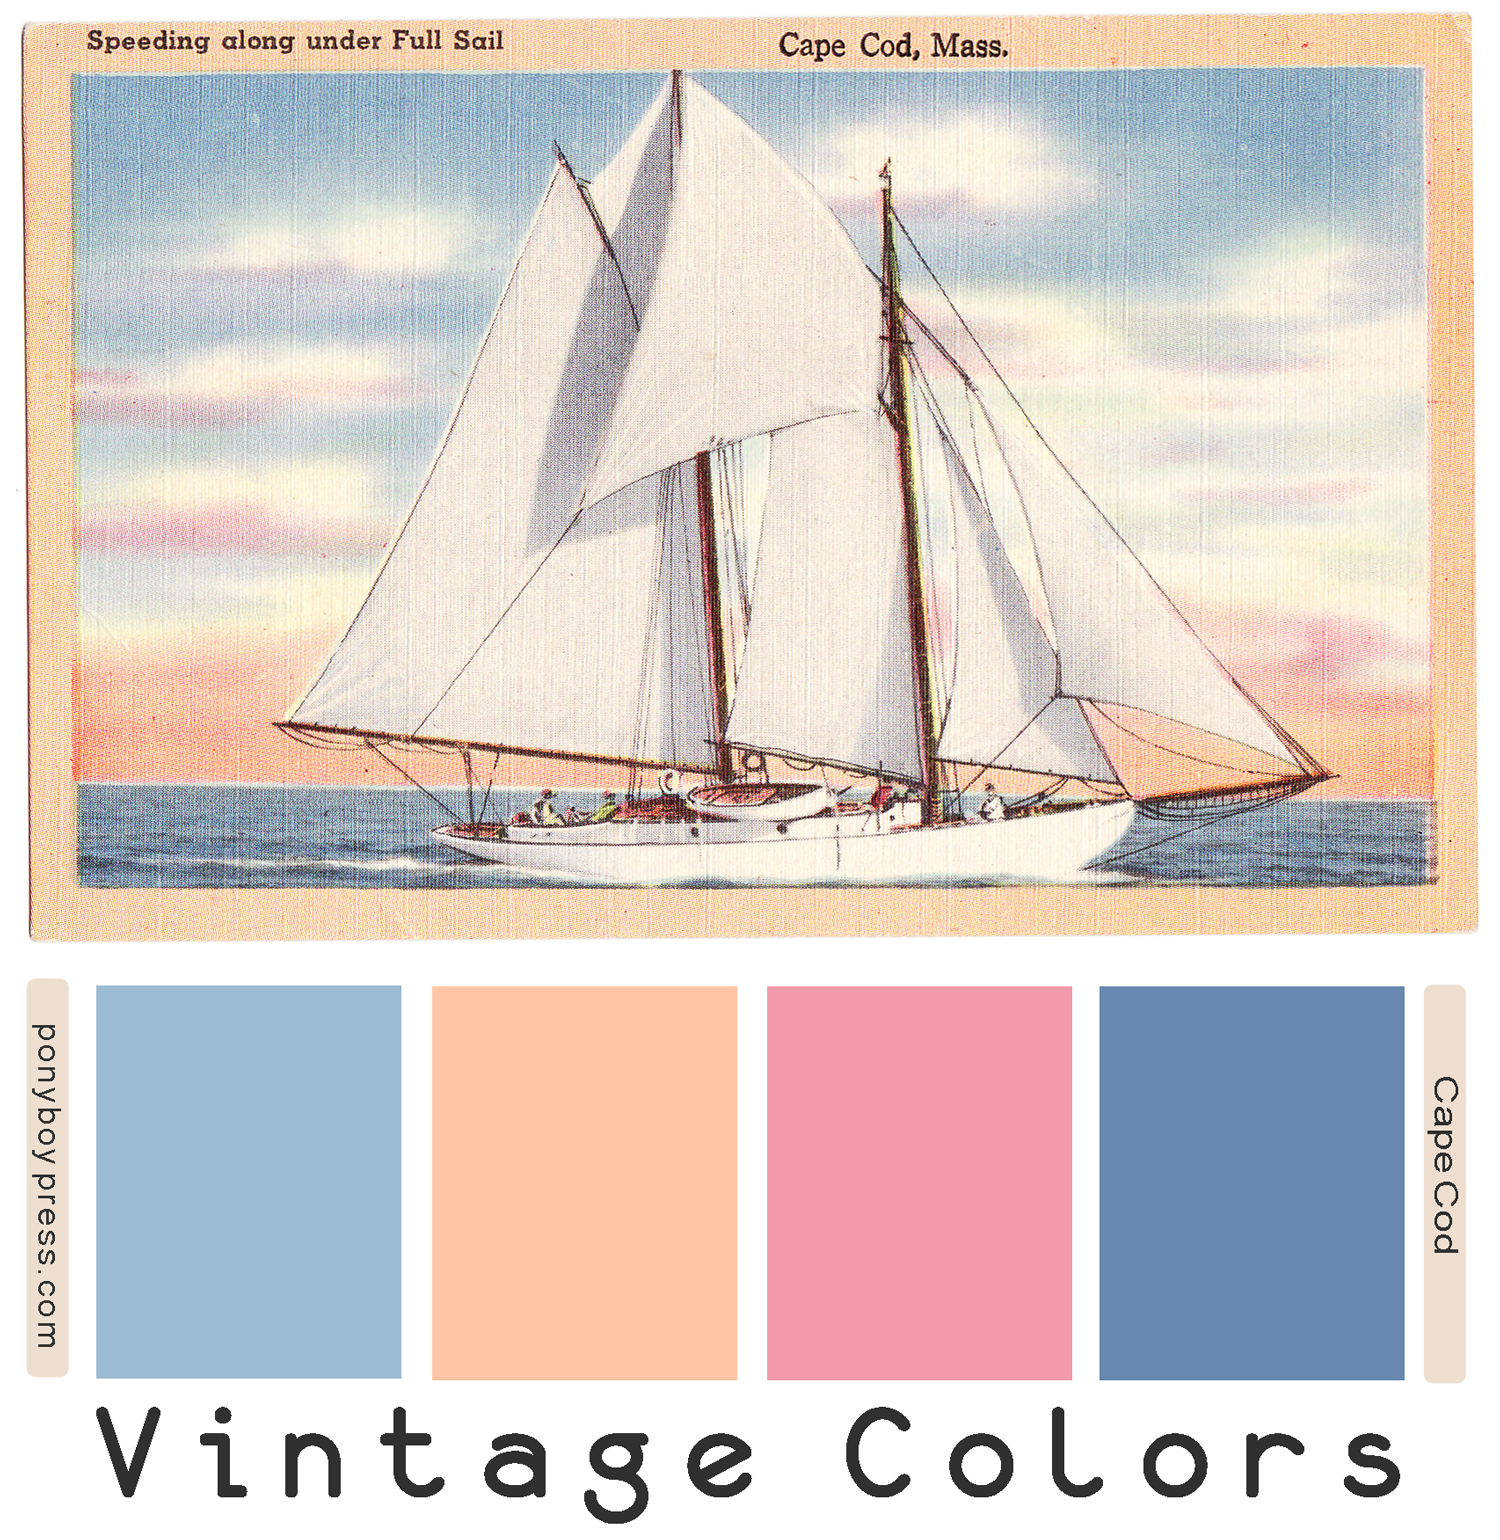 Cape Cod Color Schemes: Zine Maker, Design Lover, Dedicated